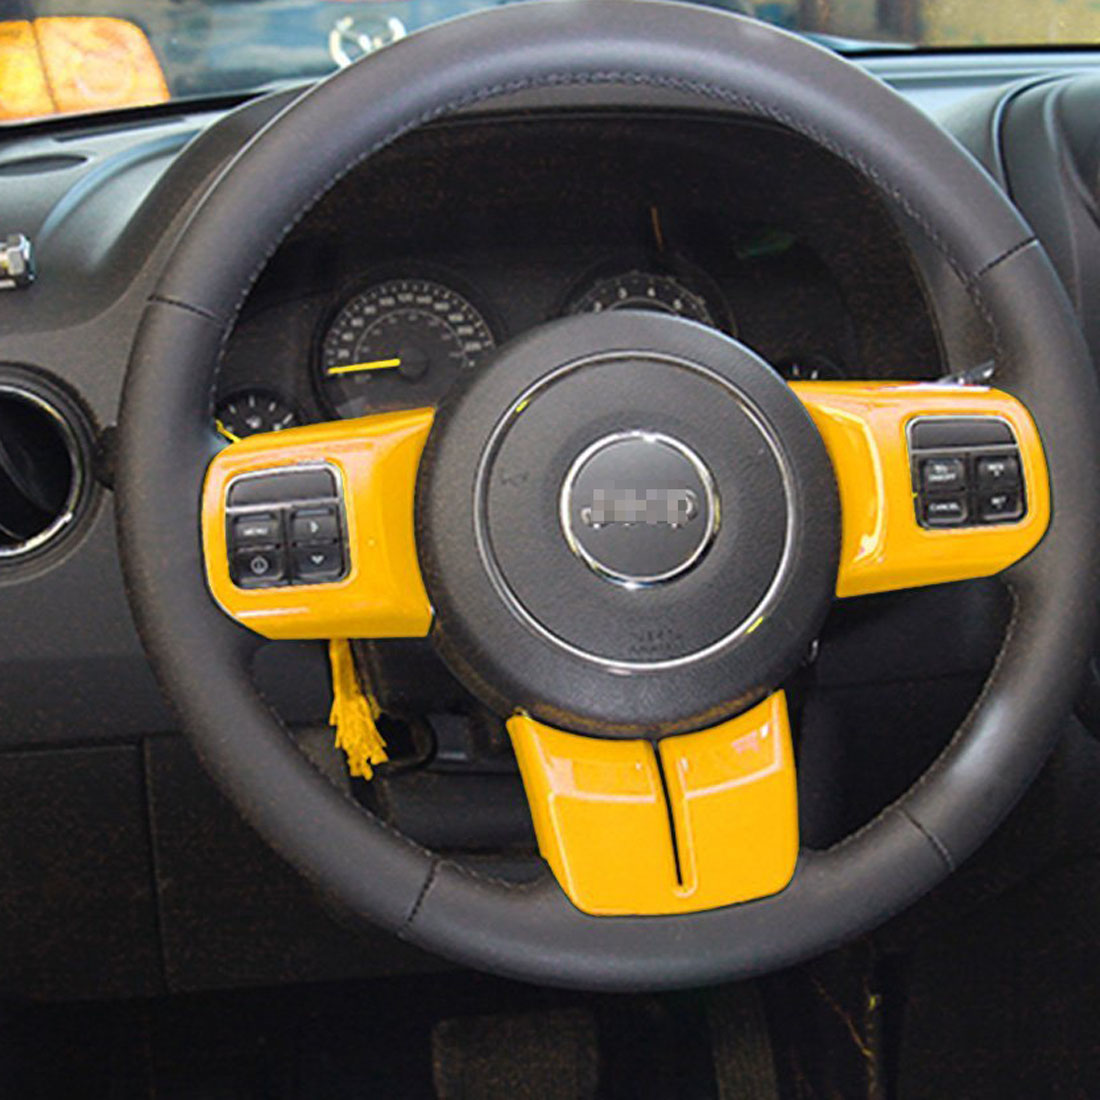 Jeep Wrangler Parts Frame Interior Dashboard Trim Cover Kit For 2011 2017 14x Yellow Abs 11 17